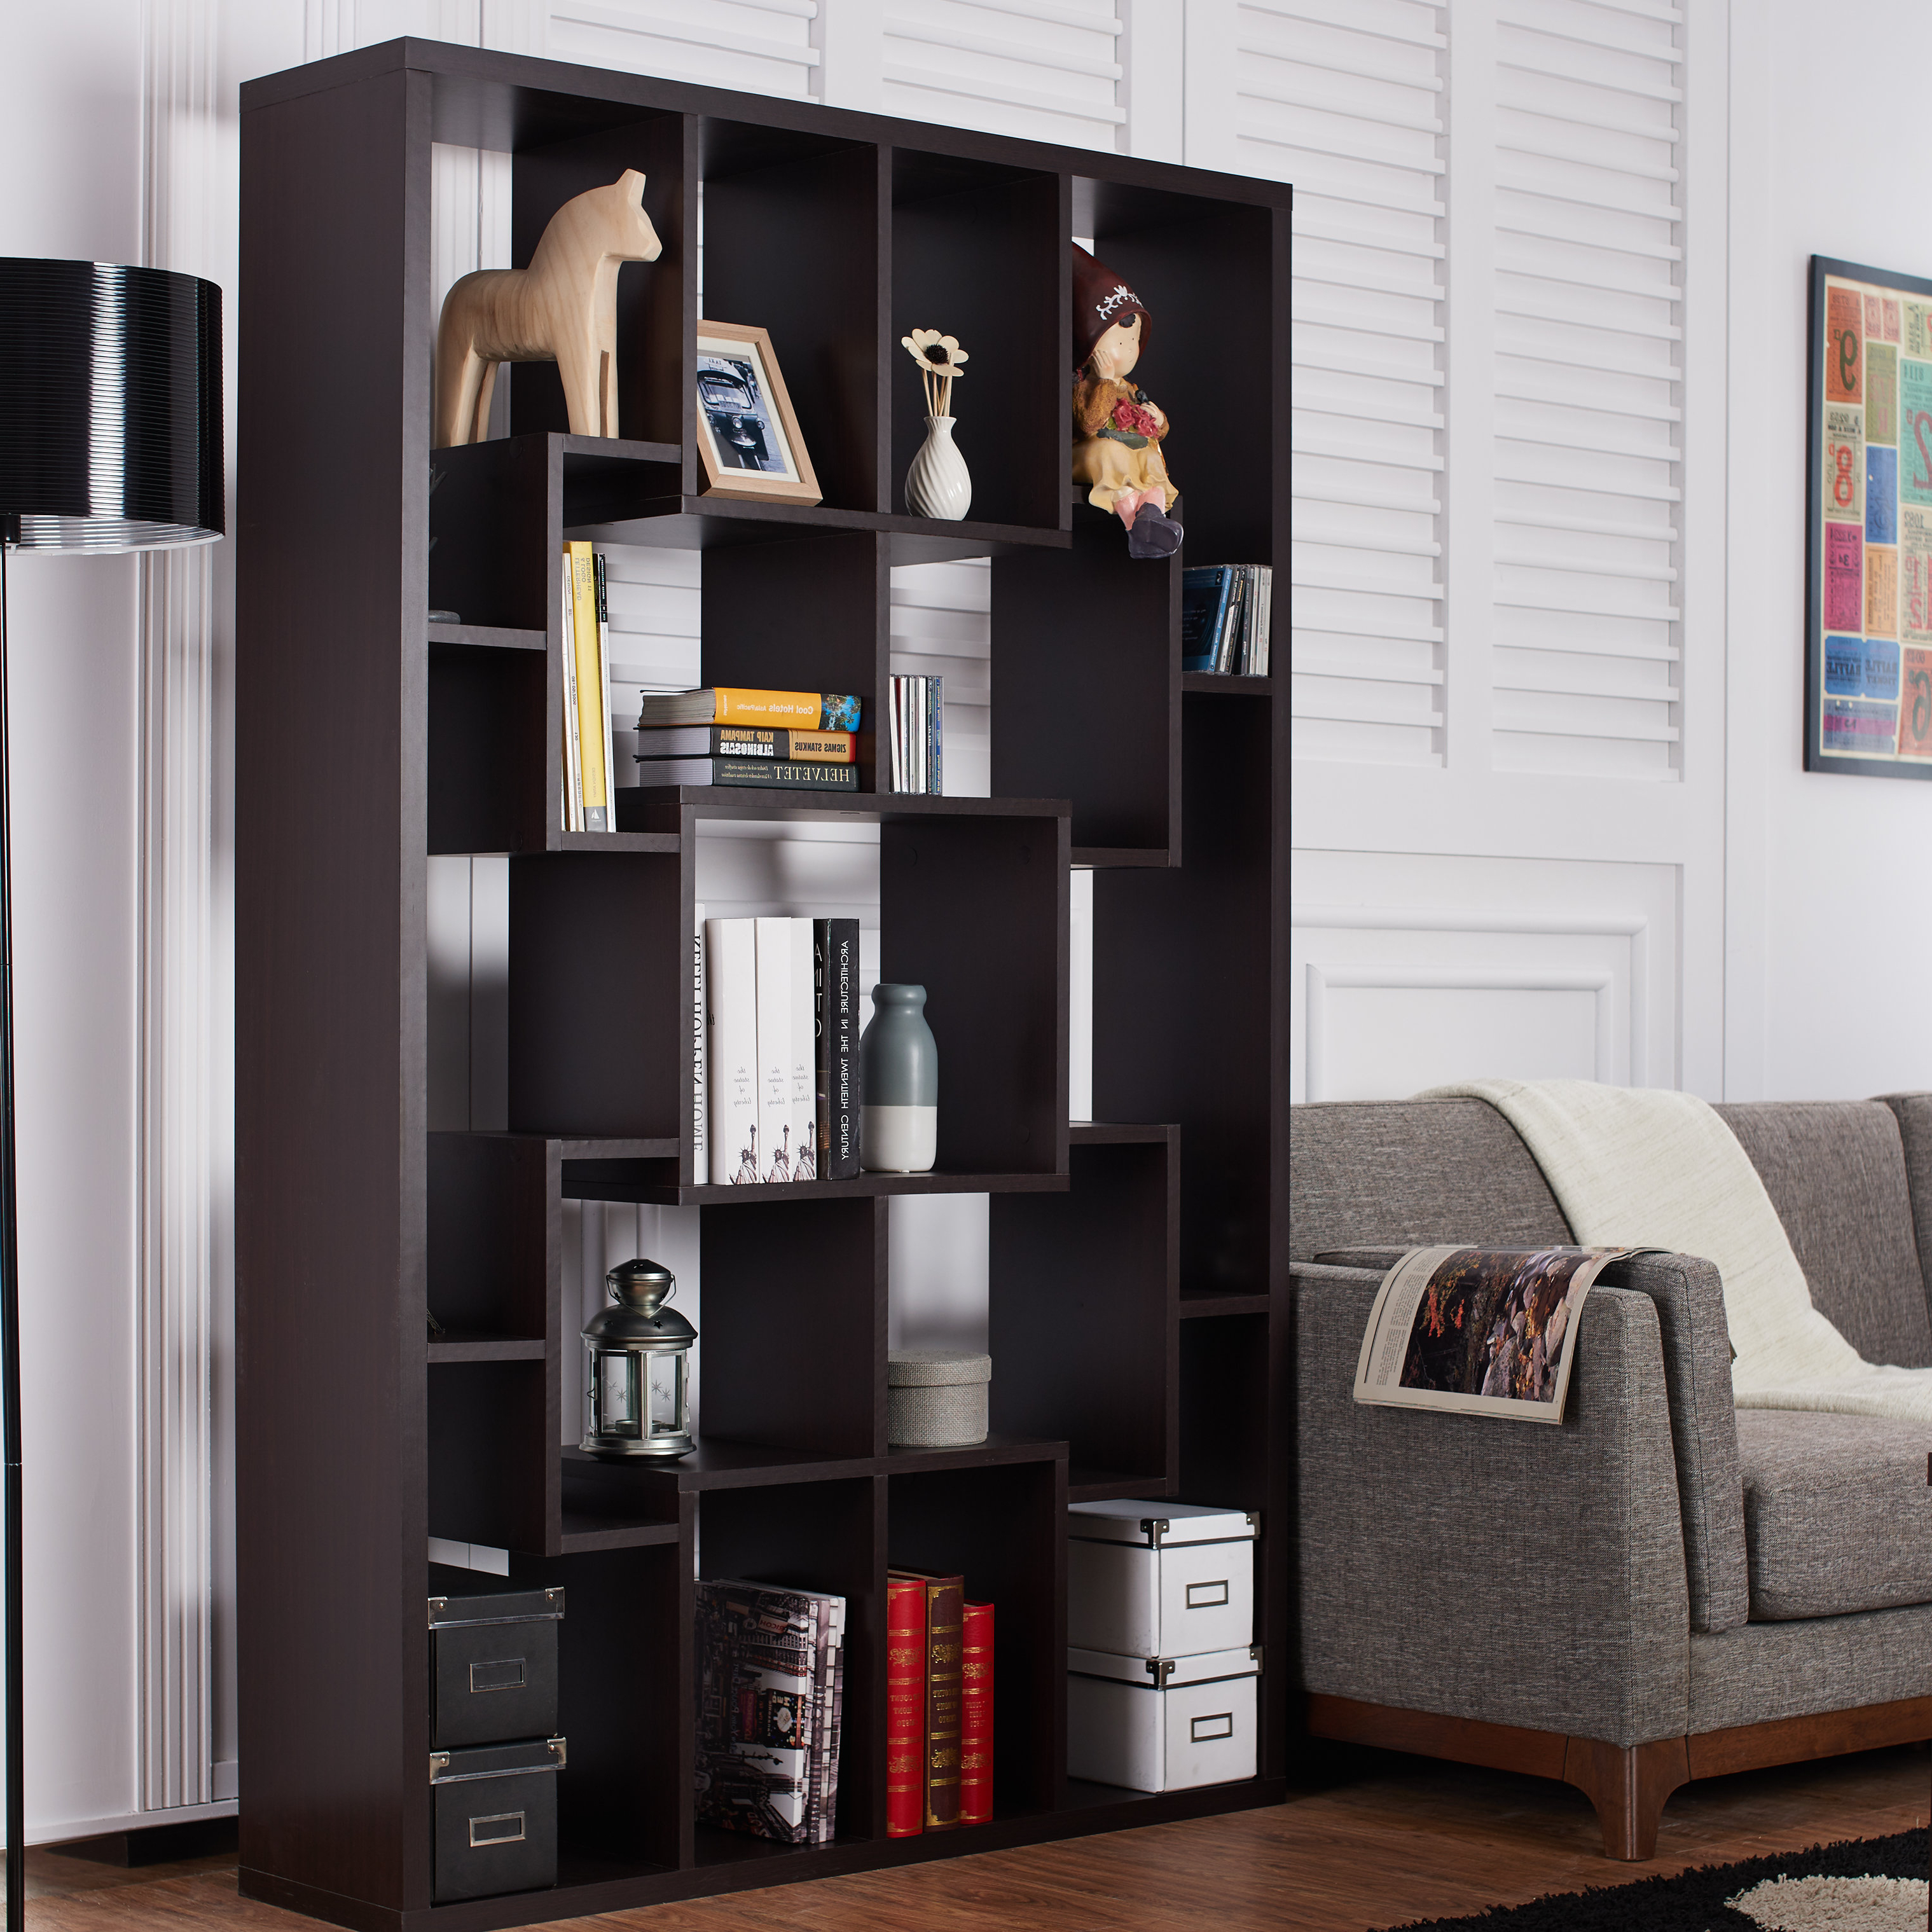 Farmhouse & Rustic Cube Bookcases & Bookshelves (View 4 of 20)